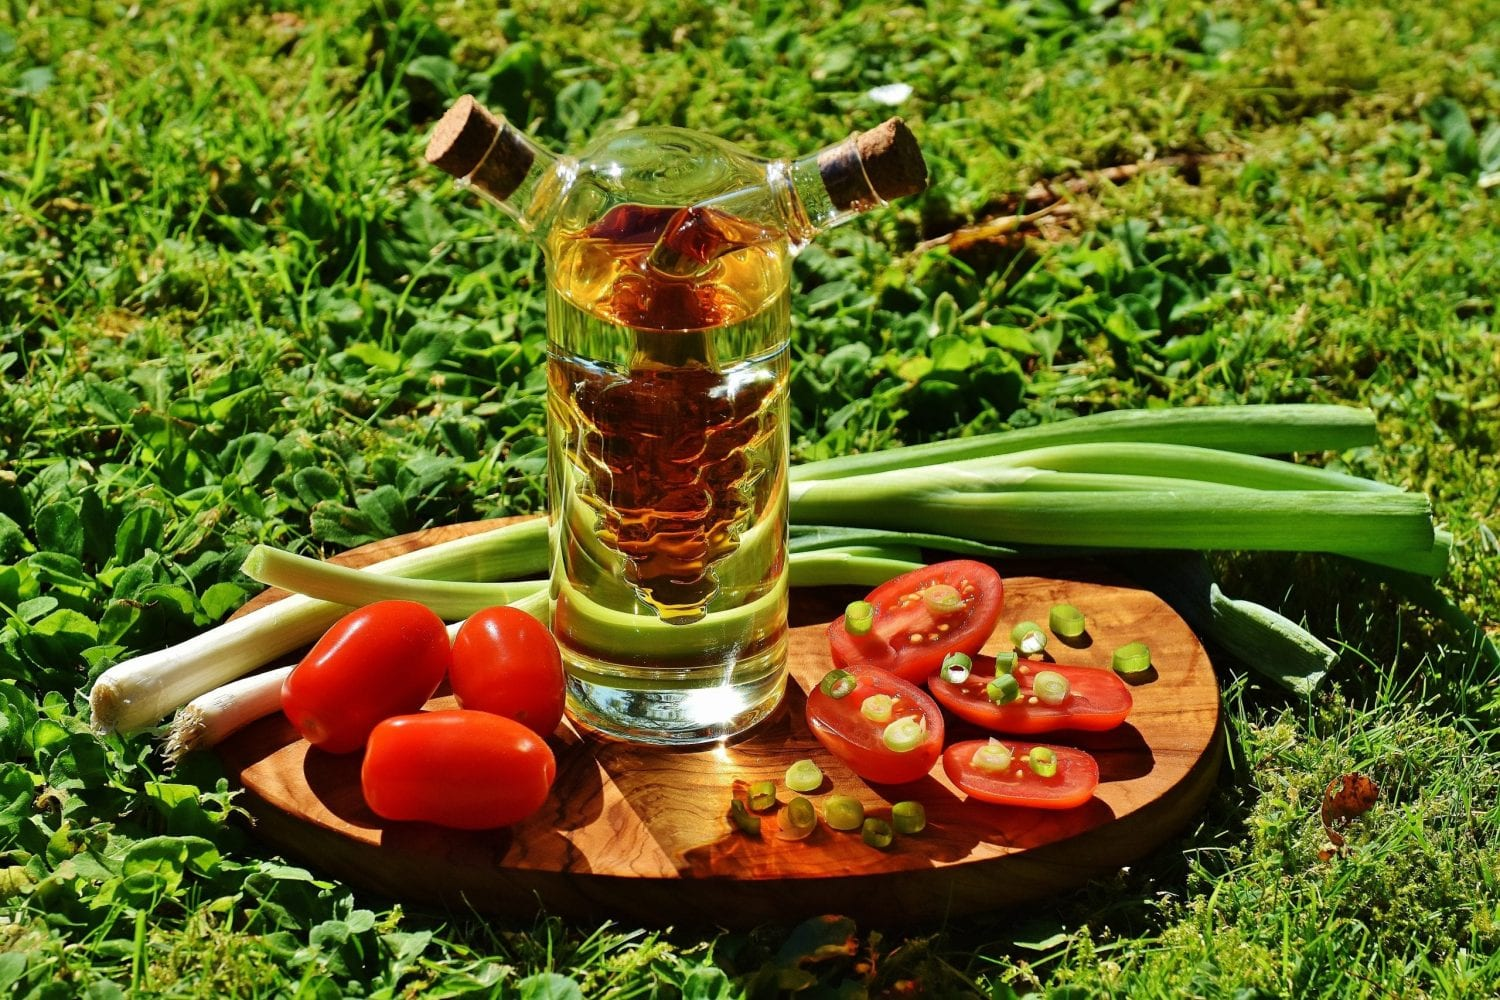 Cannabis infused cooking oil on a brown cutting board with tomatoes, onions, and veggies. This is all on bright green grass